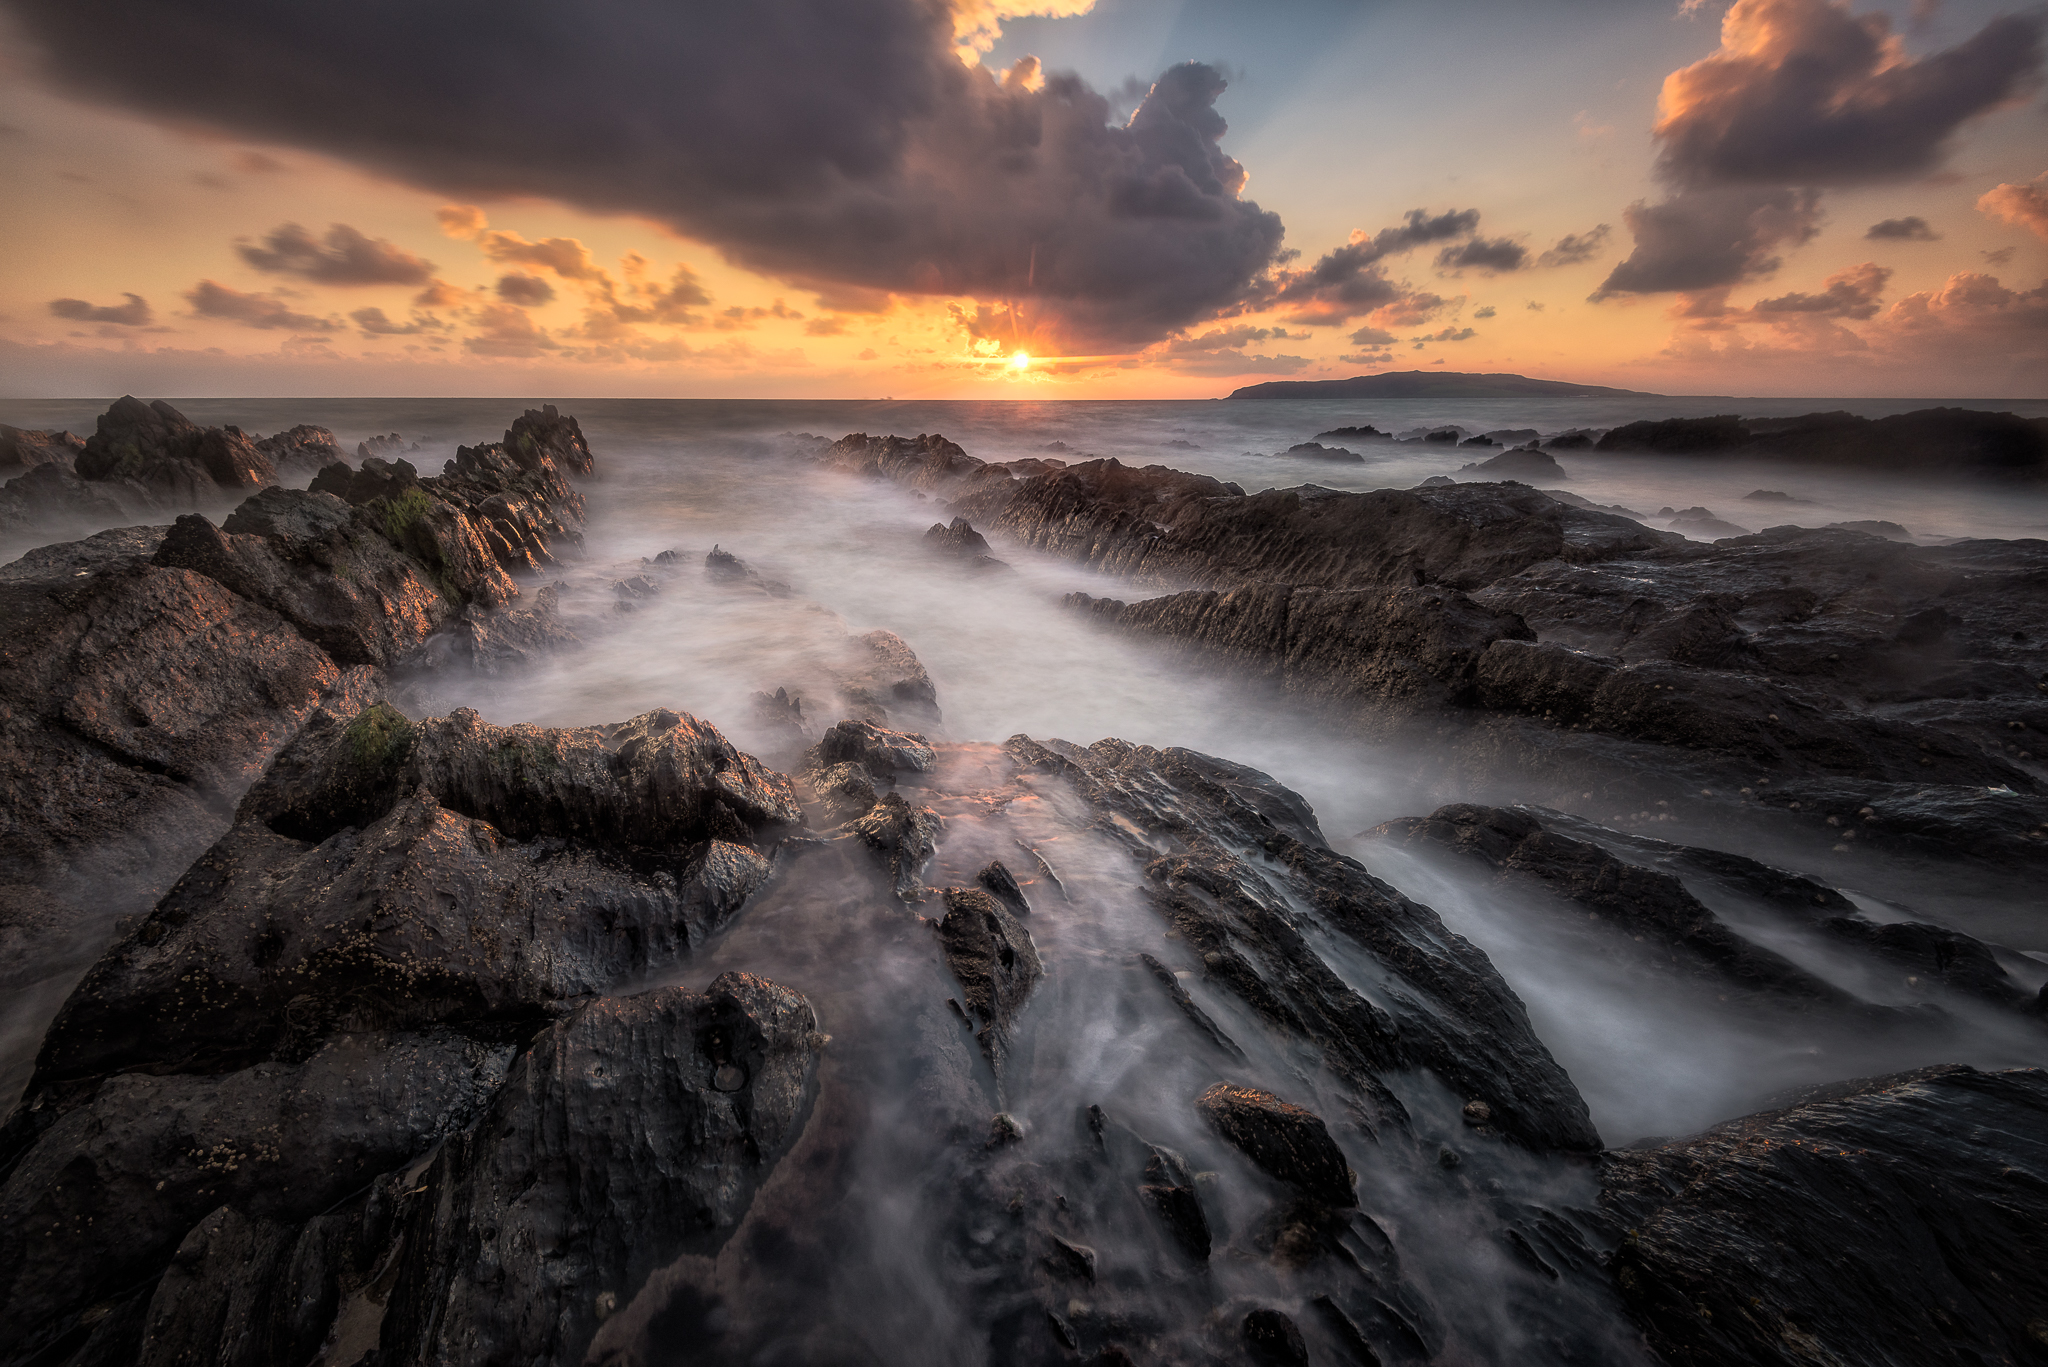 rush-sunrise-seascape-ireland-dublin-photography-tutorial